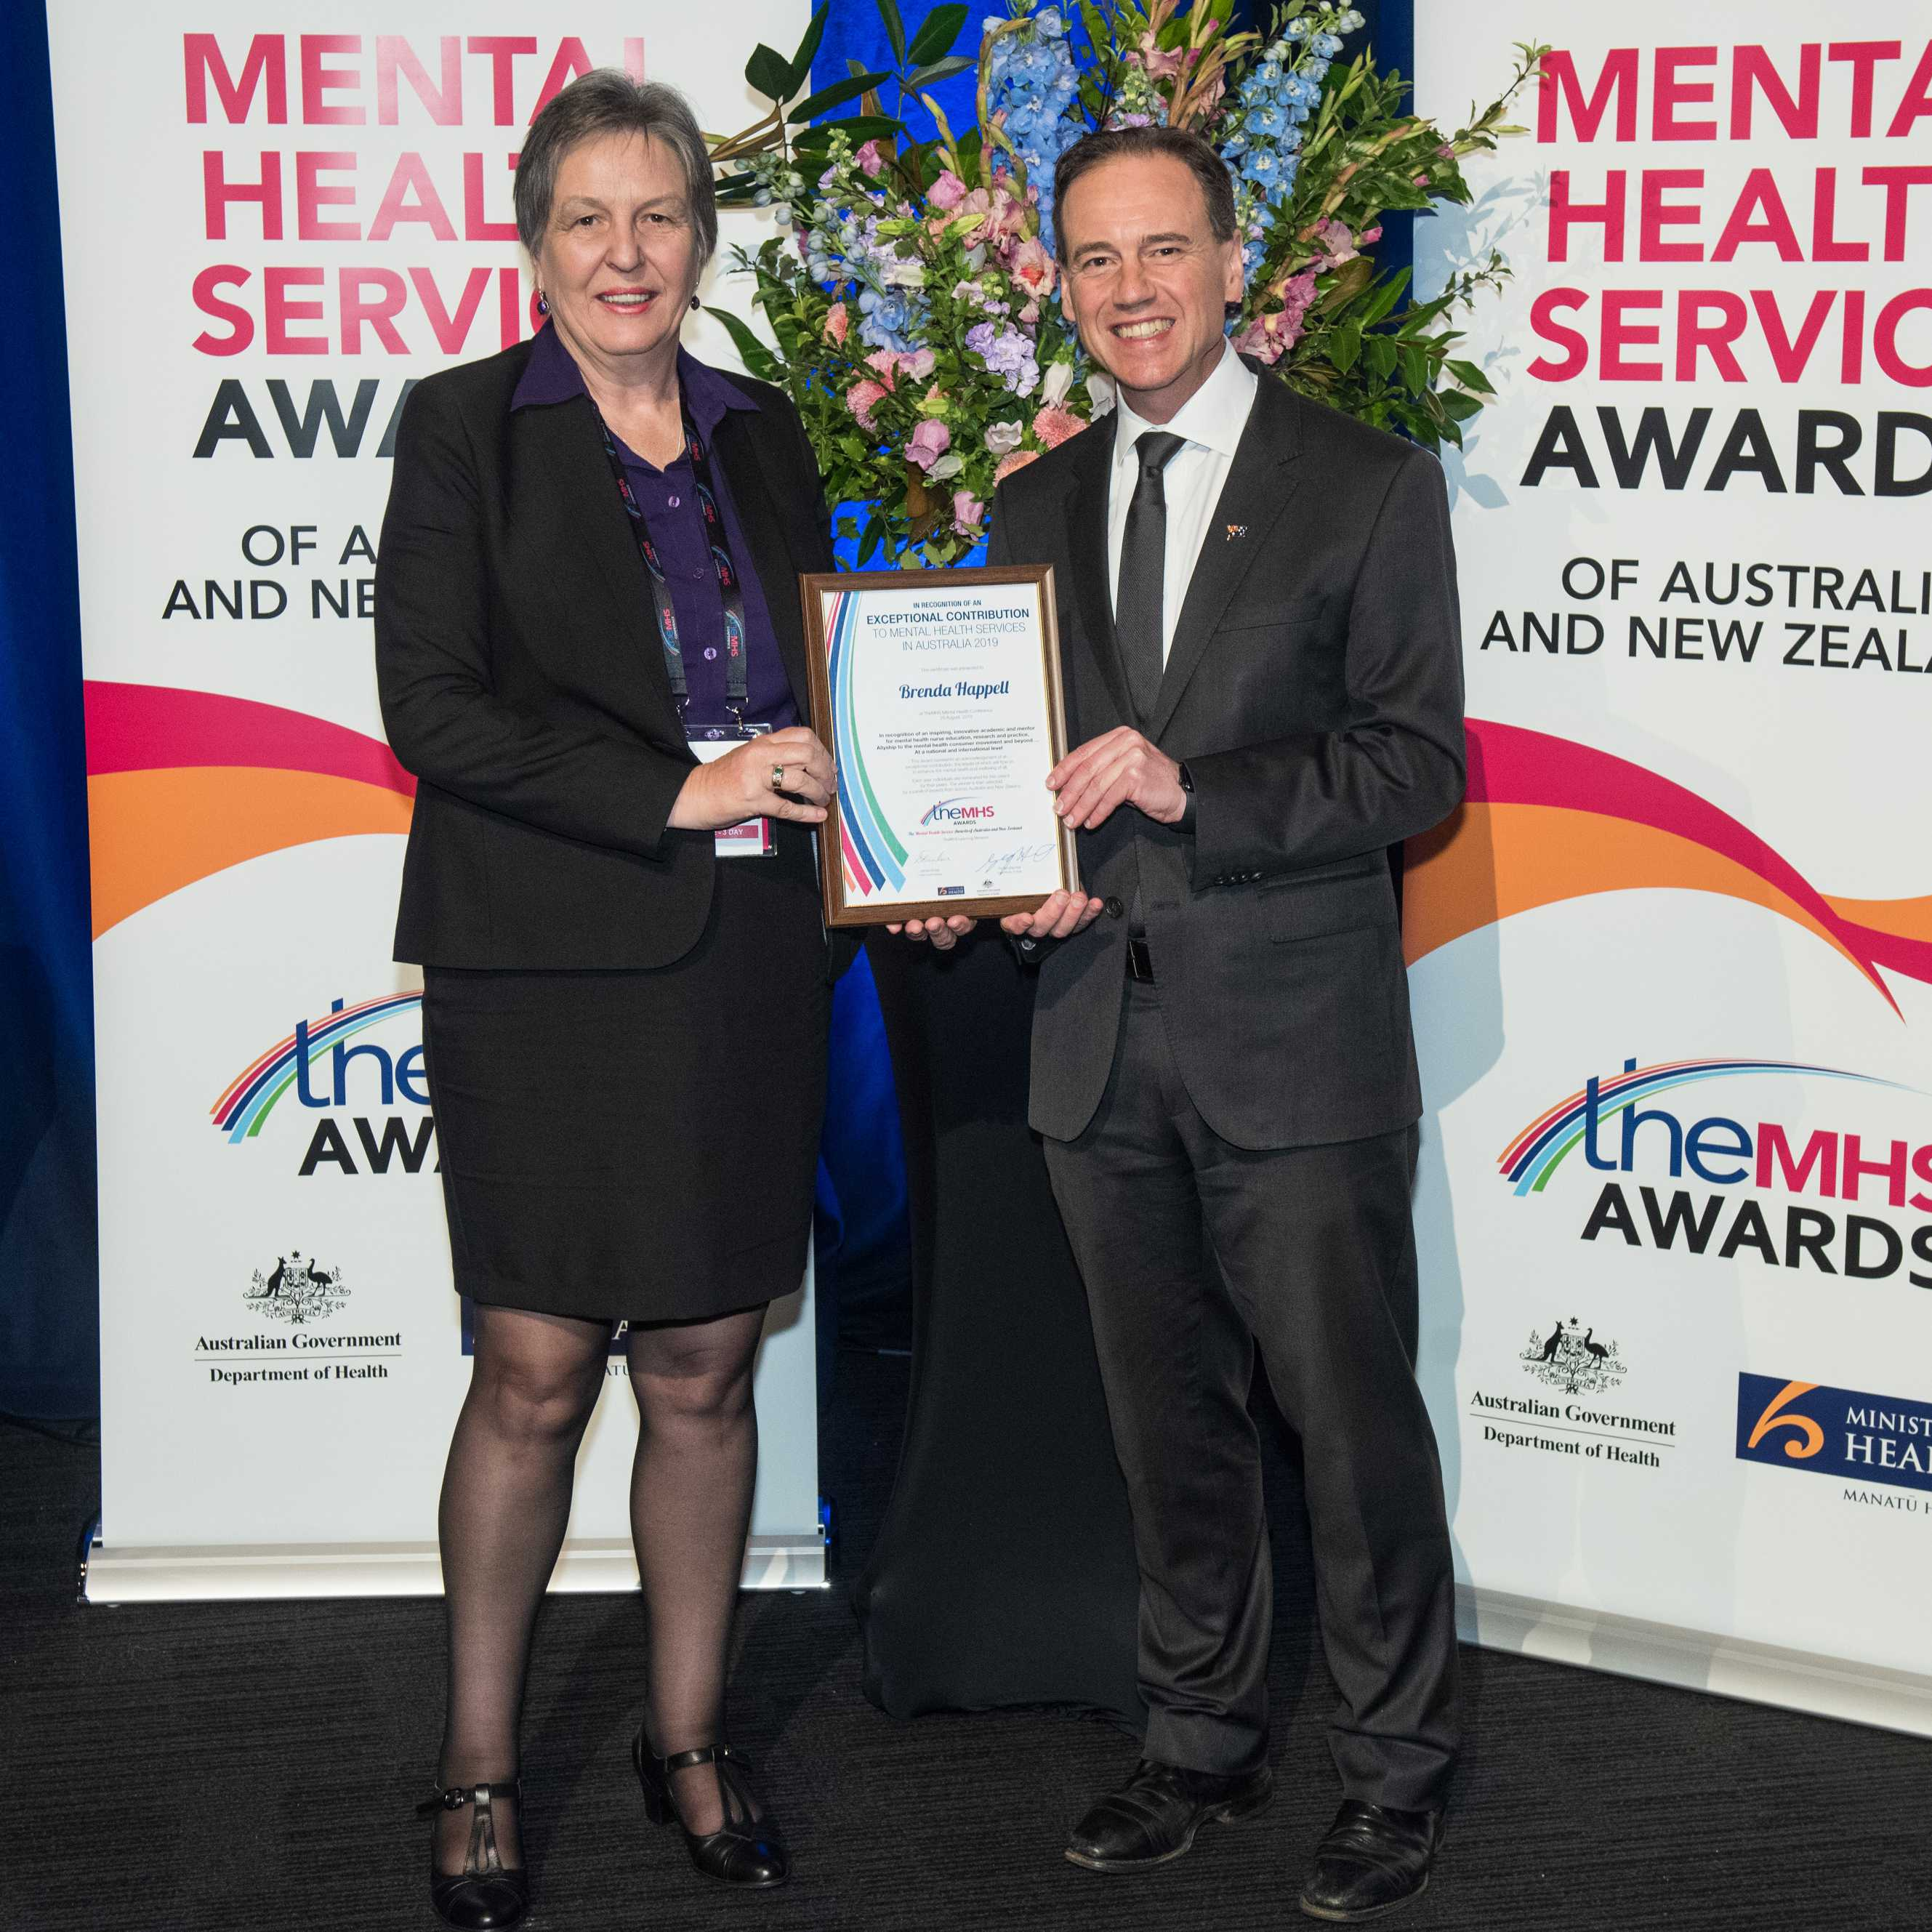 Prof Brenda Happell presented with her award by The Hon Greg Hunt MP, Federal Minister for Health